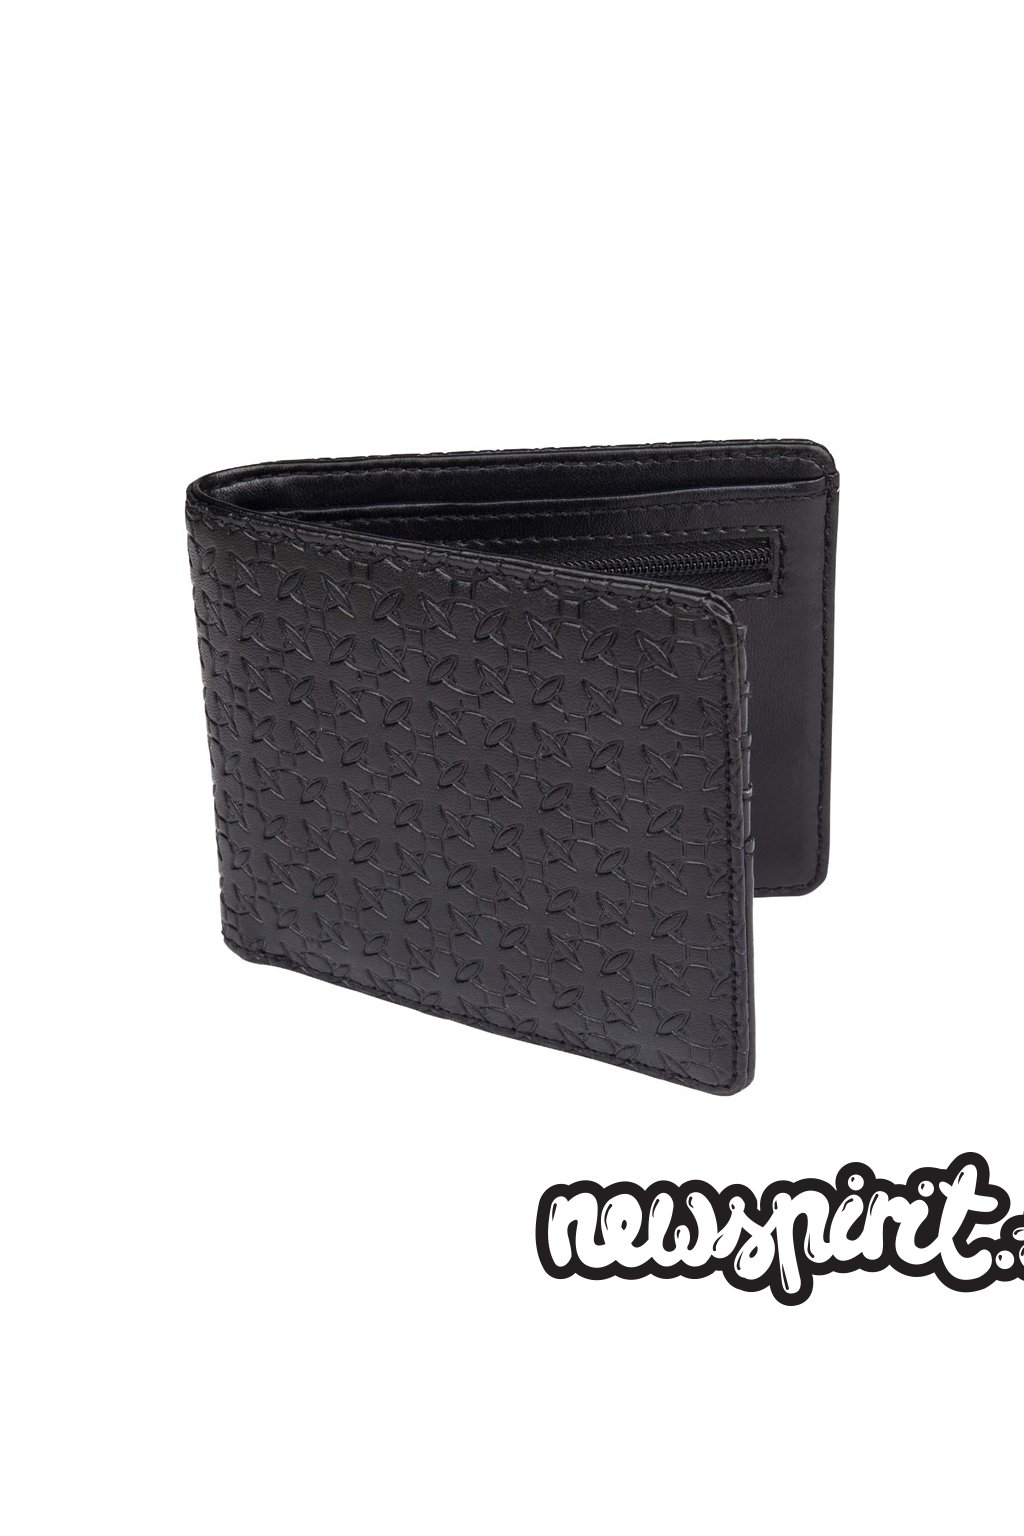 Independent Wallet Repeat Cross Black Emboss